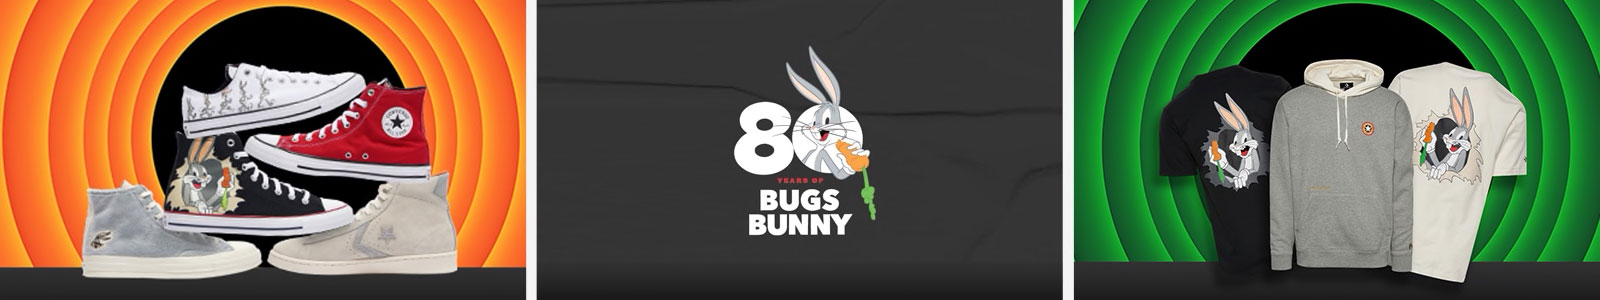 bugs-bunny-converse-shoes-clothing